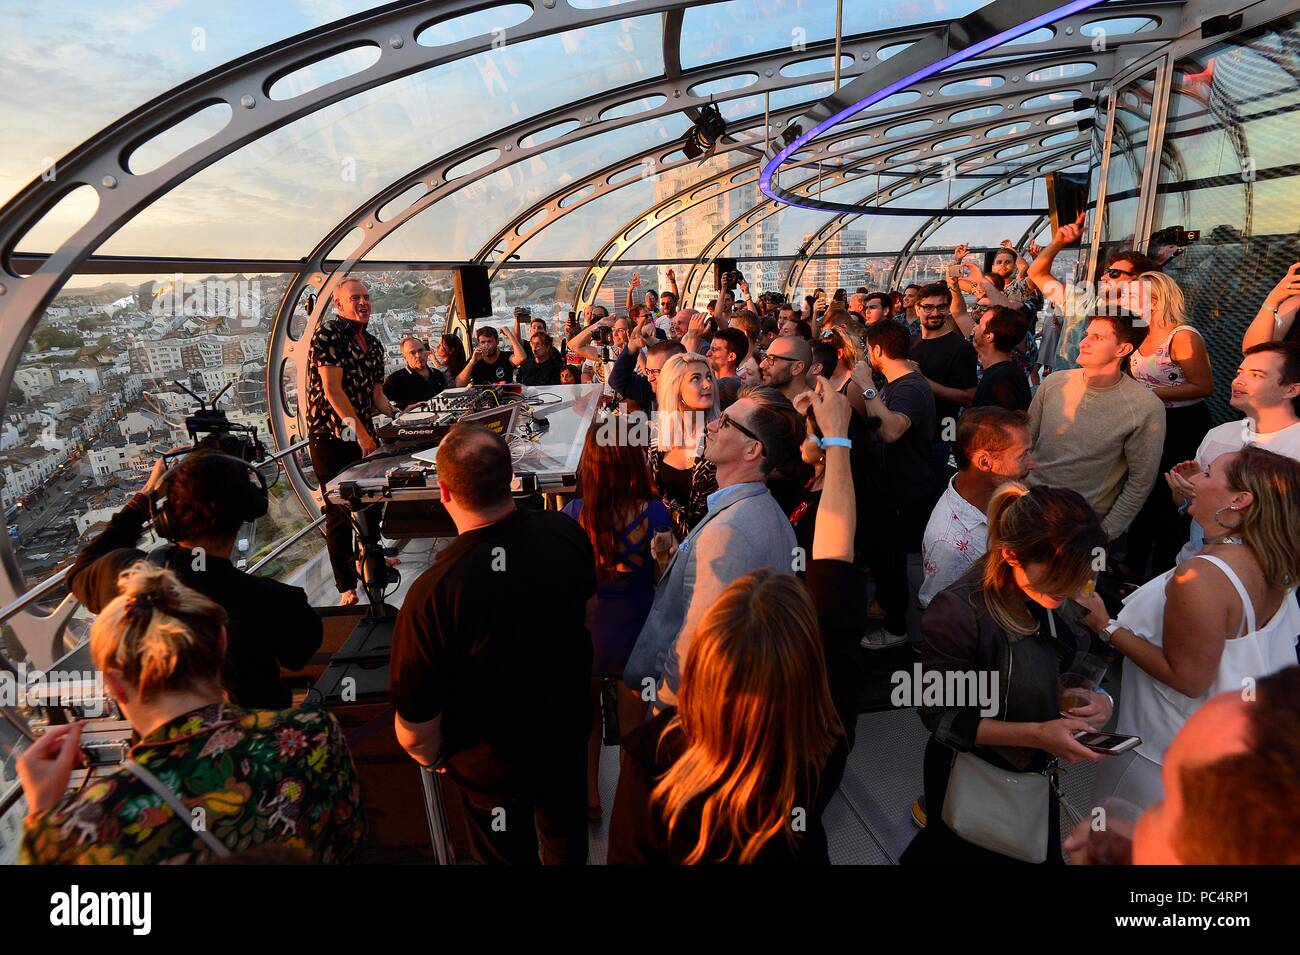 Fatboy Slim gig on the British Airways  i360 Brighton 1.2 million tuned in to a Facebook livestream. Picture:Terry Applin - Stock Image